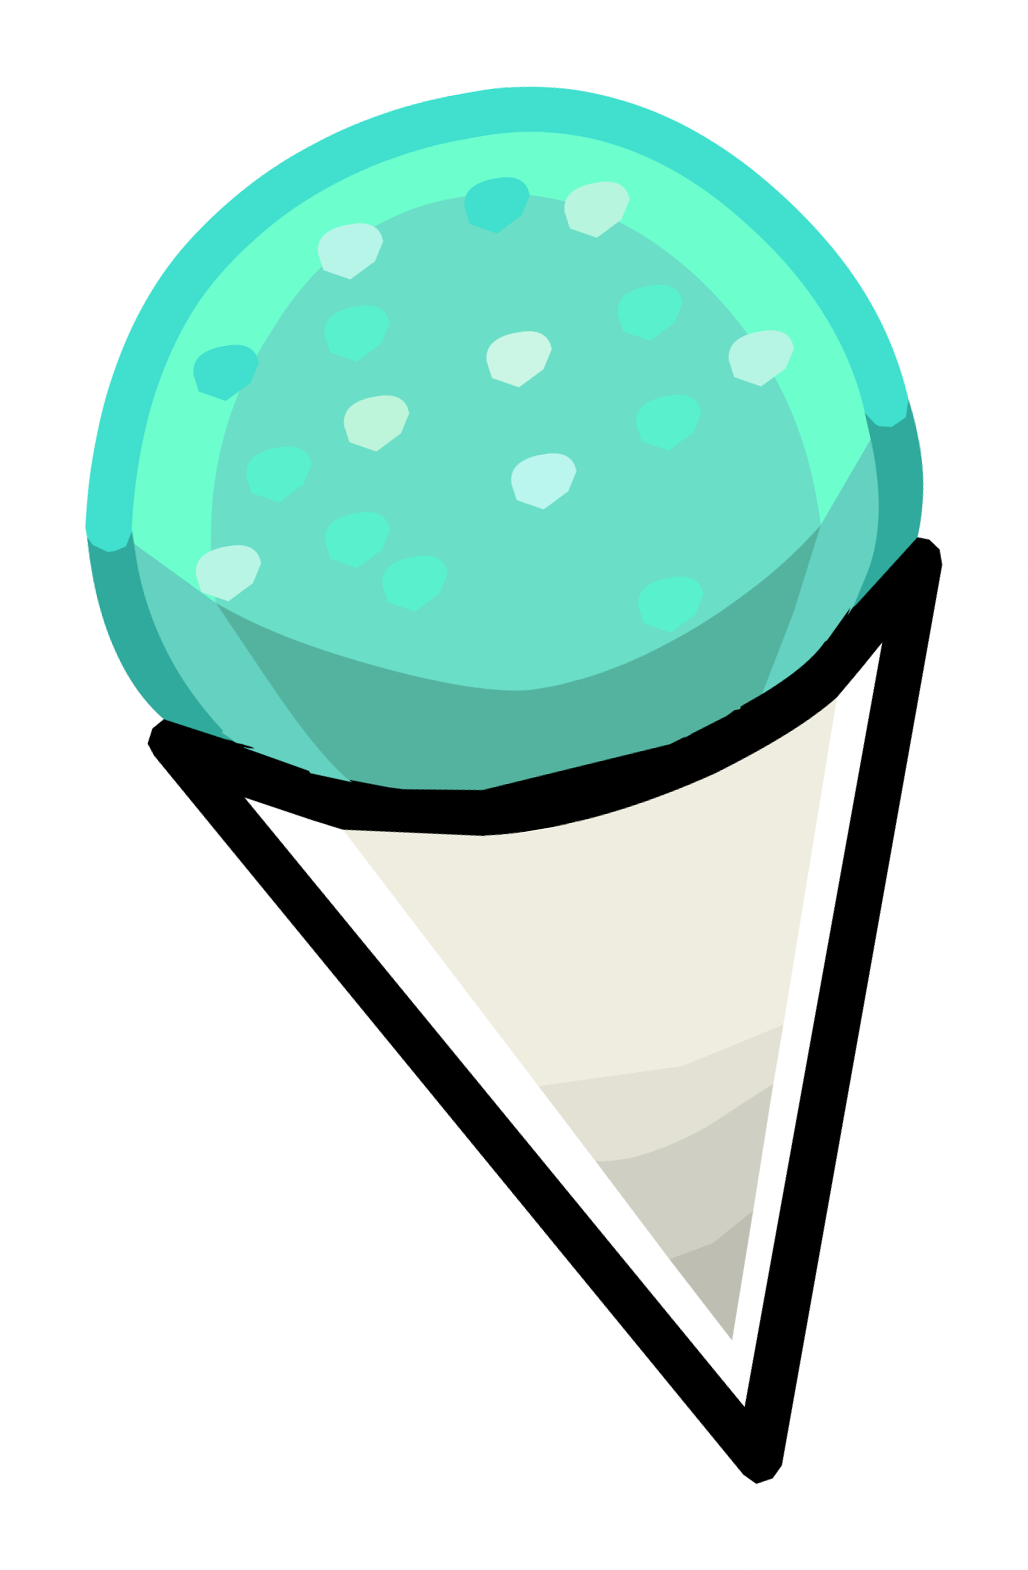 Snow Cone Pin - Club Penguin Wiki - The free, editable encyclopedia ...